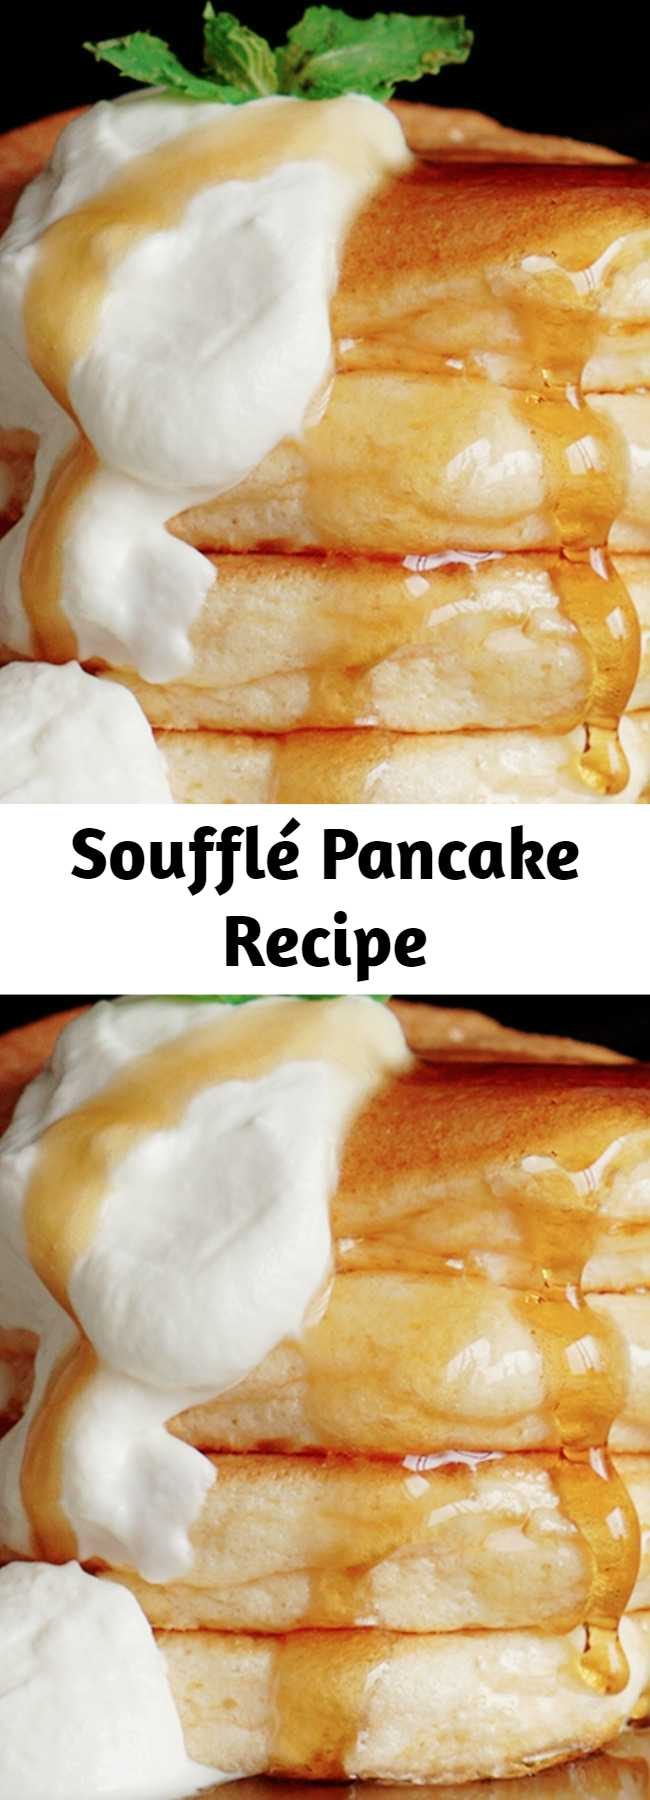 Soufflé Pancake Recipe - For flapjacks that are extra fluffy try separating the egg whites from the yolks in the style of a soufflé.